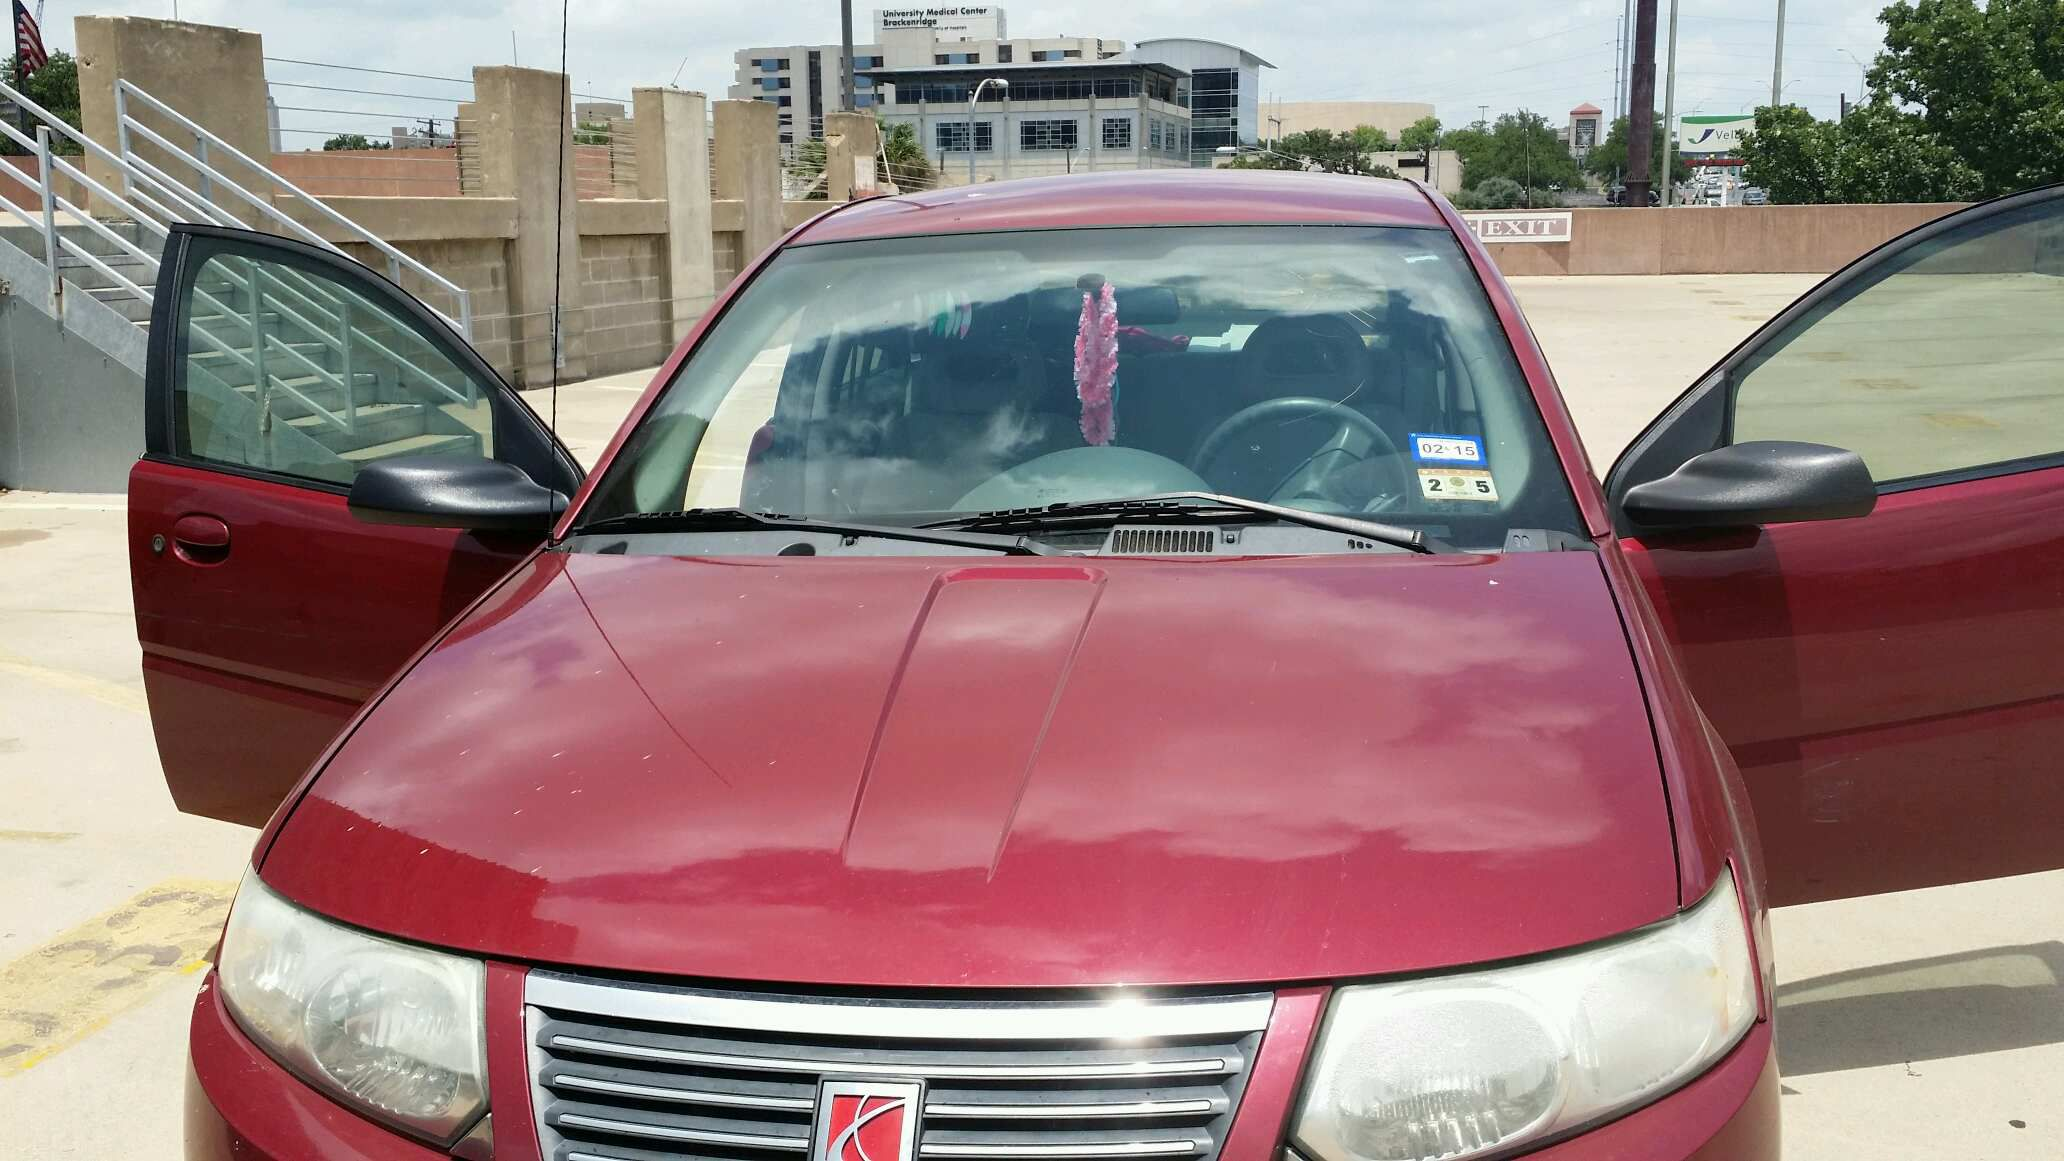 Saturn windshield replacement prices local auto glass quotes 2004 saturn ion 4 door sedan windshield vanachro Image collections